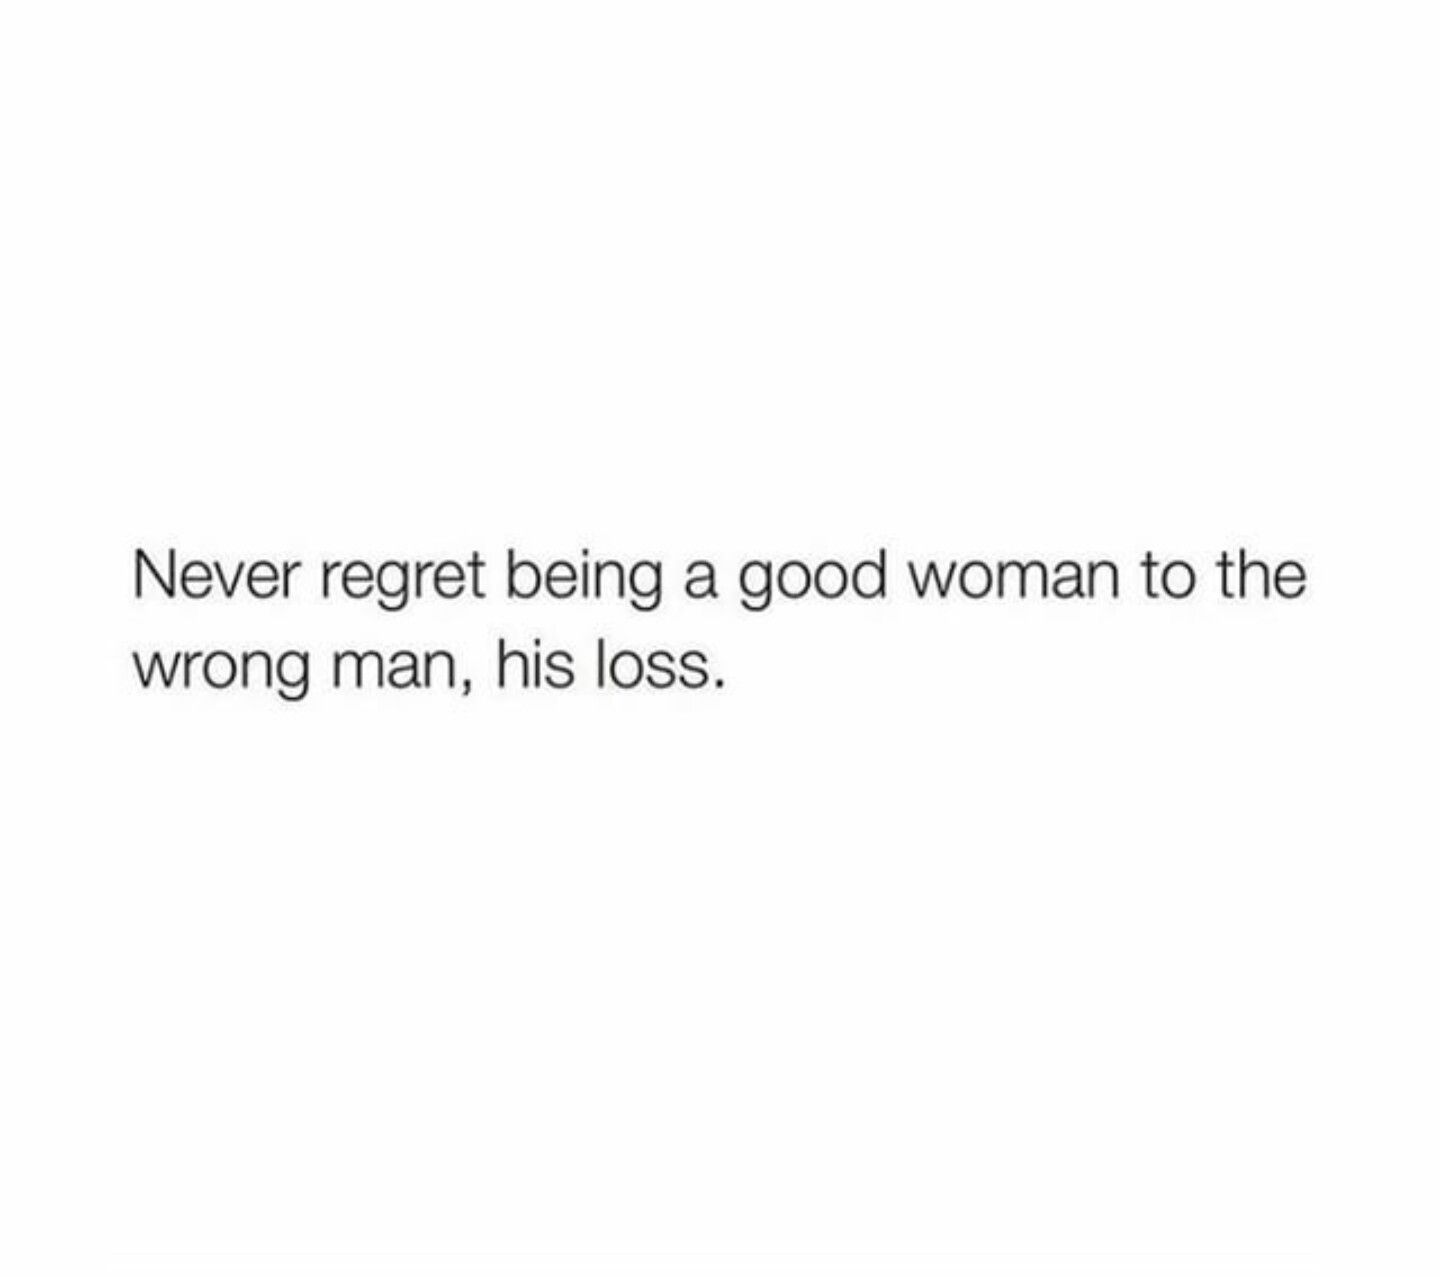 Never Regret Being A Good Woman To The Wrong Man His Loss Regret Quotes Good Woman Quotes Life Quotes